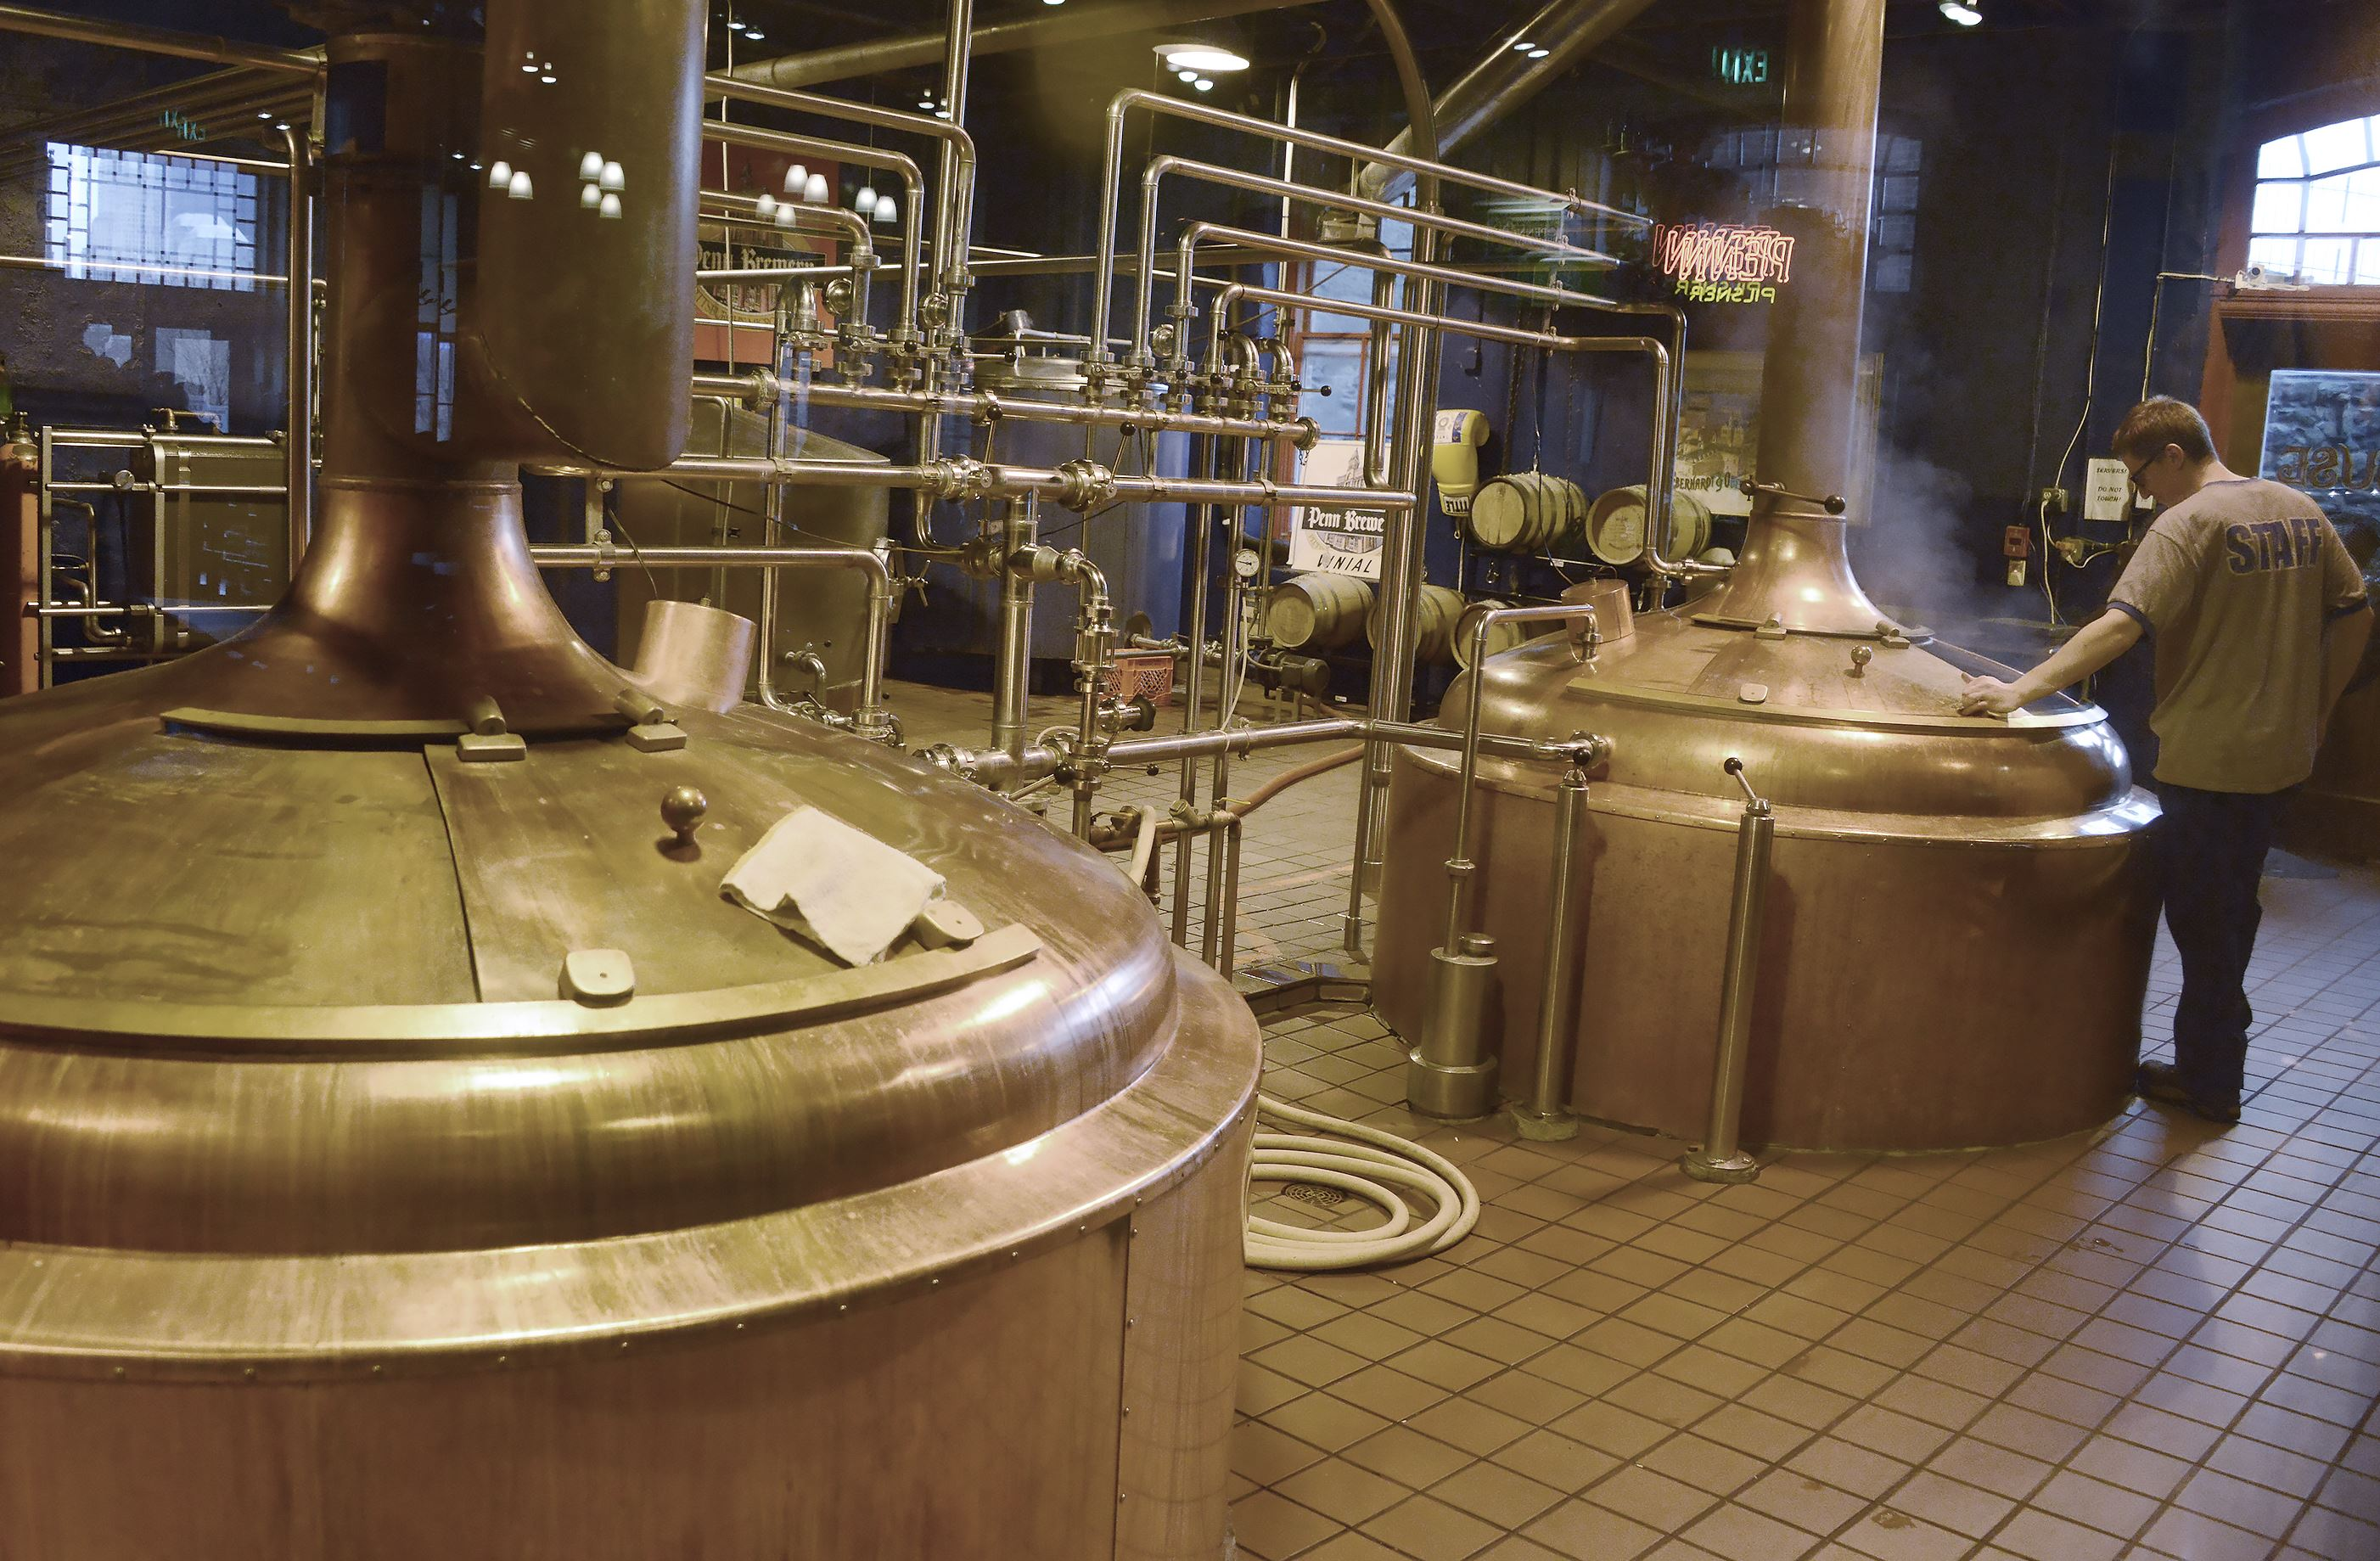 20160404dsCraftBeerSunMag02-1 The brewhouse at Penn Brewery on the North Side.